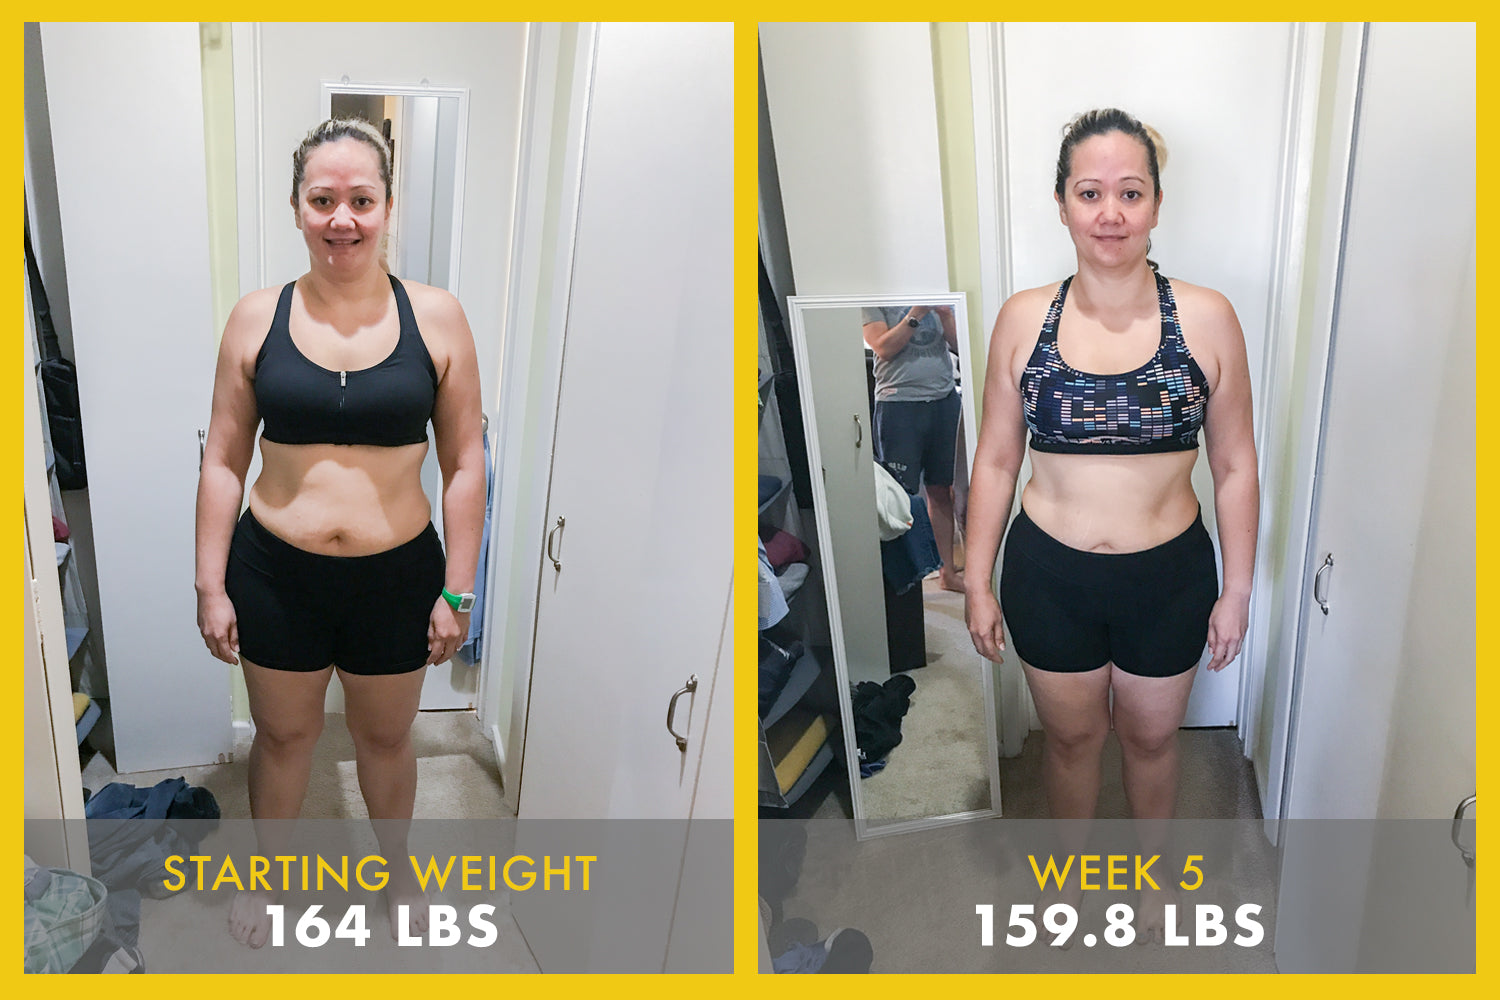 Weight loss challenger's progress pic after 5 week program